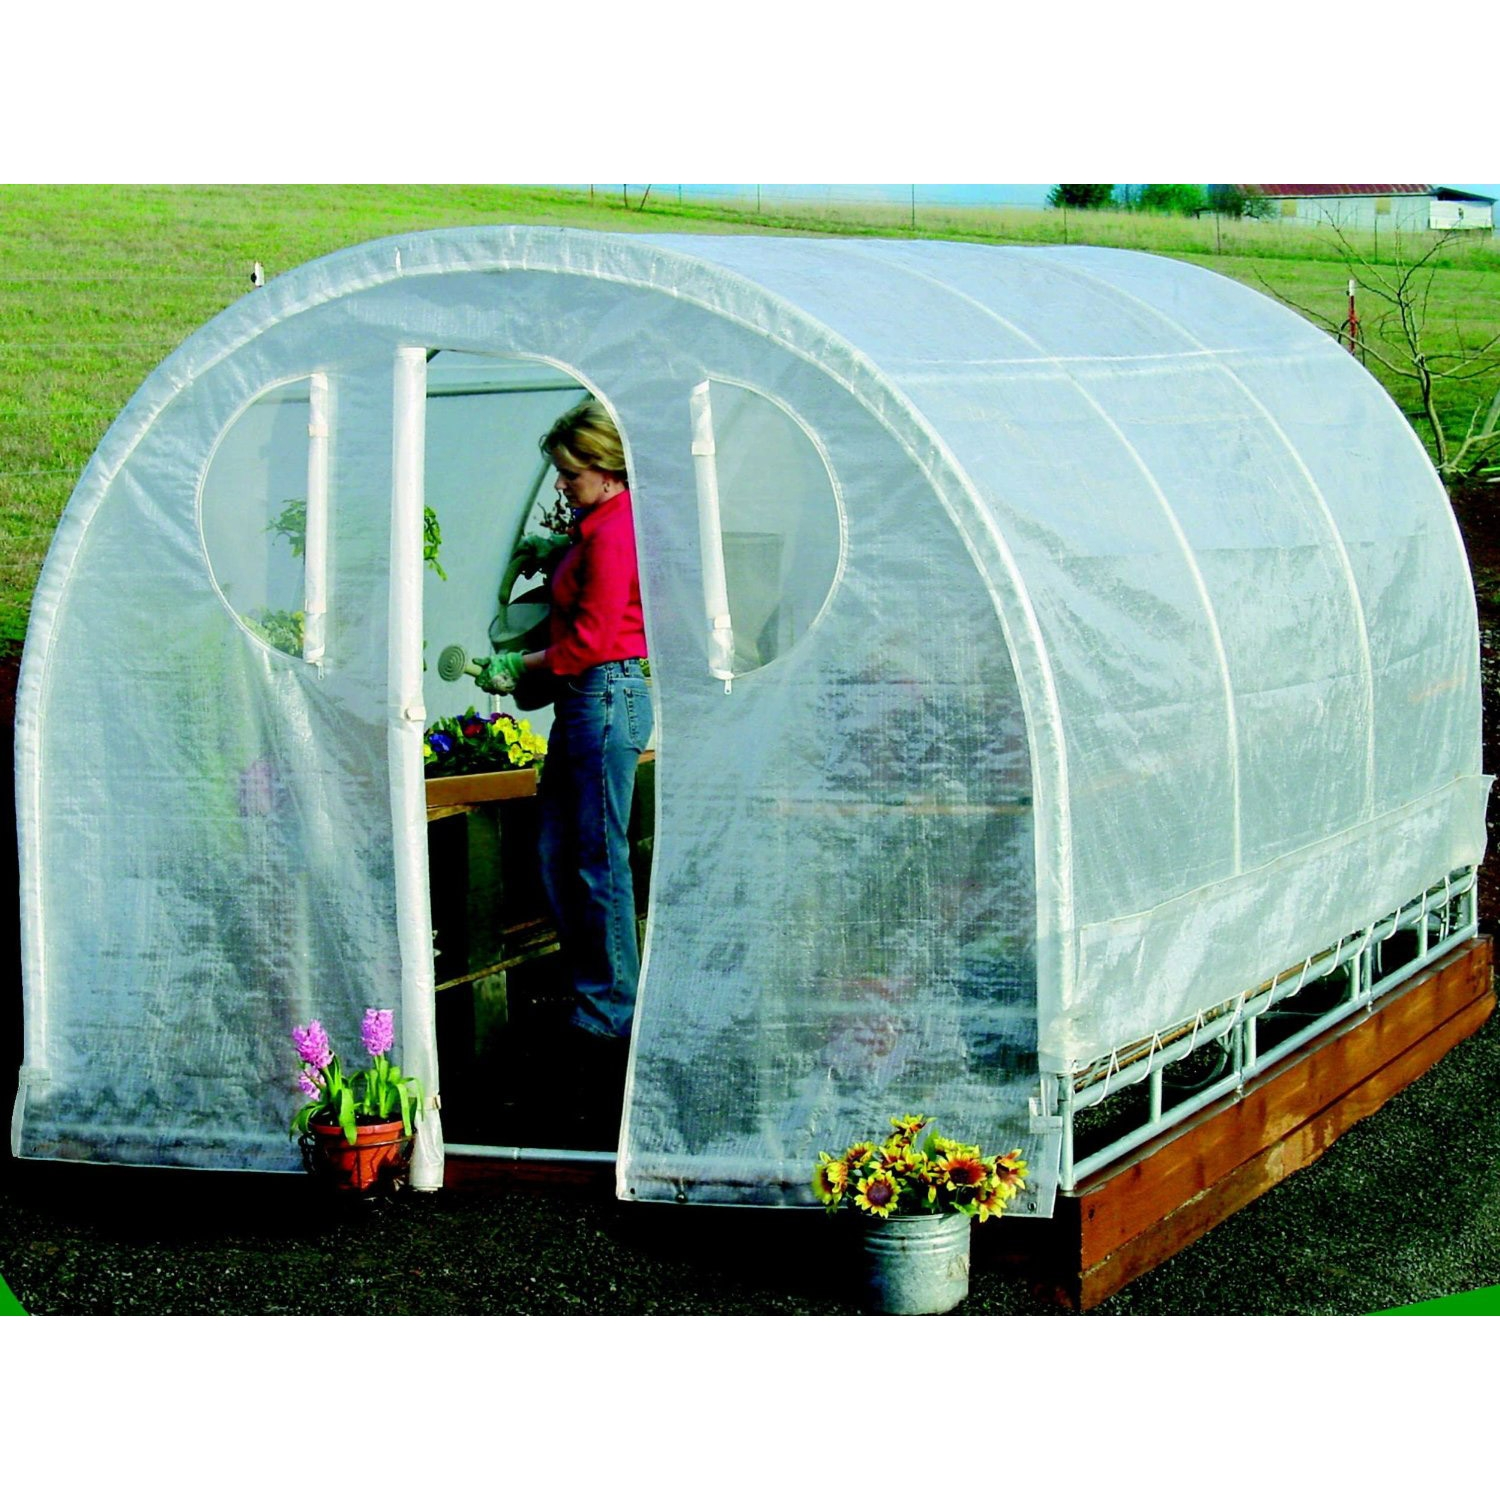 Polytunnel Hoop House Greenhouse (8' x 12'), PTHSG8X12 :   Designed as the highest quality, most compact, space saving greenhouse packaged in a retail box. This Polytunnel hoop-house cold-frame style High-Tunnel greenhouse features a space saver design.  The modern greenhouse offers all of the same quality, workmanship, and results as the Commercial Series Green House while appealing to beginner, novice, and professional growers alike. Each Deck and Patio greenhouse is constructed from 100 percent commercial grade galvanized steel frame. Featuring quick connect steel frame and steel frame connectors. It includes a rugged all weather triple layer Polyurethane, cover, back panel, and front entry. Rust resistant galvanized steel. The frame components and frame connectors are galvanized after being welded. This Greenhouse provides maximum protection, growth, and reliability by using a complete three piece all growth fabric construction with unit-body cover, solid connected back panel, and solid connected front entry – allowing for easy access and maintenance of plants, vegetables and herbs. It also utilizes Smart Vent – technology controlling airflow from the base of the unit and the ends of the unit with special zip out Velcro held screened vented windows. In addition the triple ridge reinforced roof structure not only acts as a weather guardian protecting against severe and inclement weather but also allows growing enthusiasts to hang their full size basket plants from the roof of the green house. All-steel construction with flex frame design and 1-1/4-inch, 16-gauge steel for stability. 14-gauge inside steel slip fitting joints for rugged rigidity and easy setup.